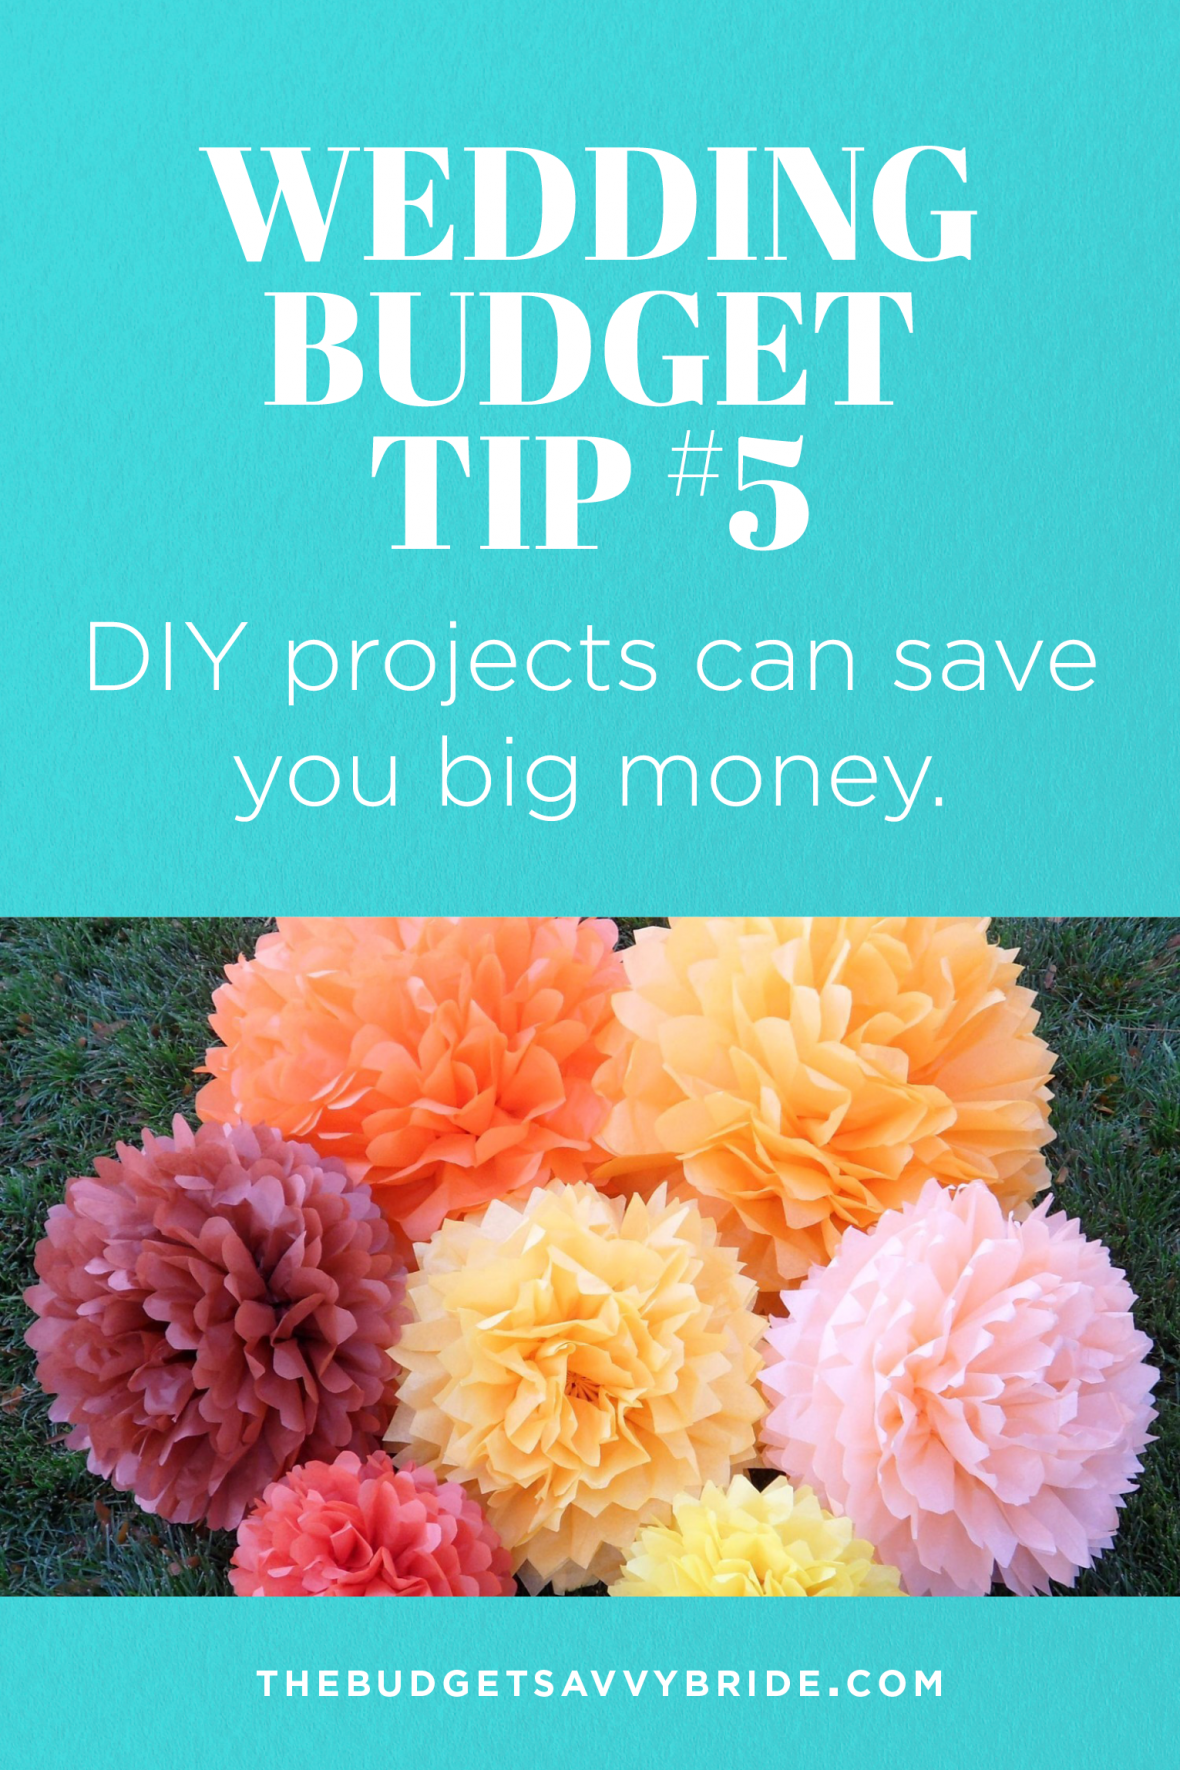 Wedding budget tip 5 do diy projects for your wedding the budget wedding budget tip 5 diy projects can save you big money solutioingenieria Image collections